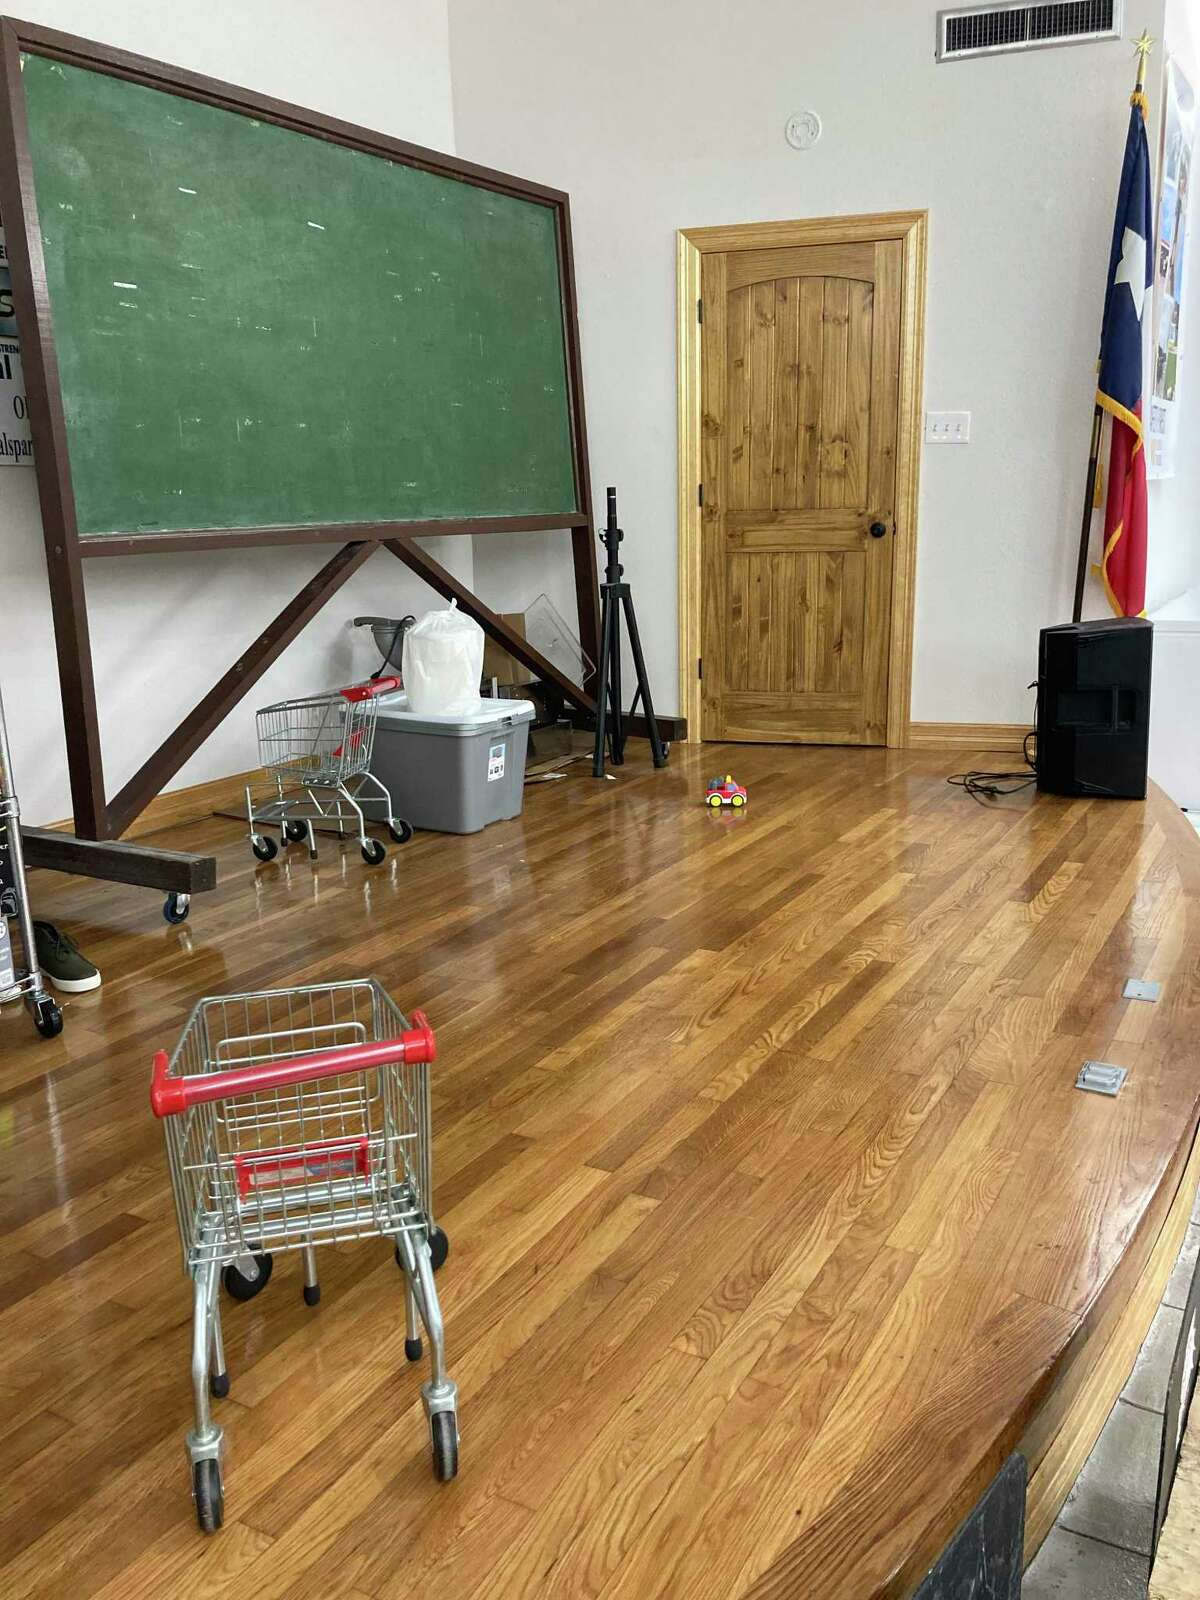 United Steelworkers has set up a food pantry for families who have lost their income as a result of the ExxonMobil lockout, which occurred on May 1.